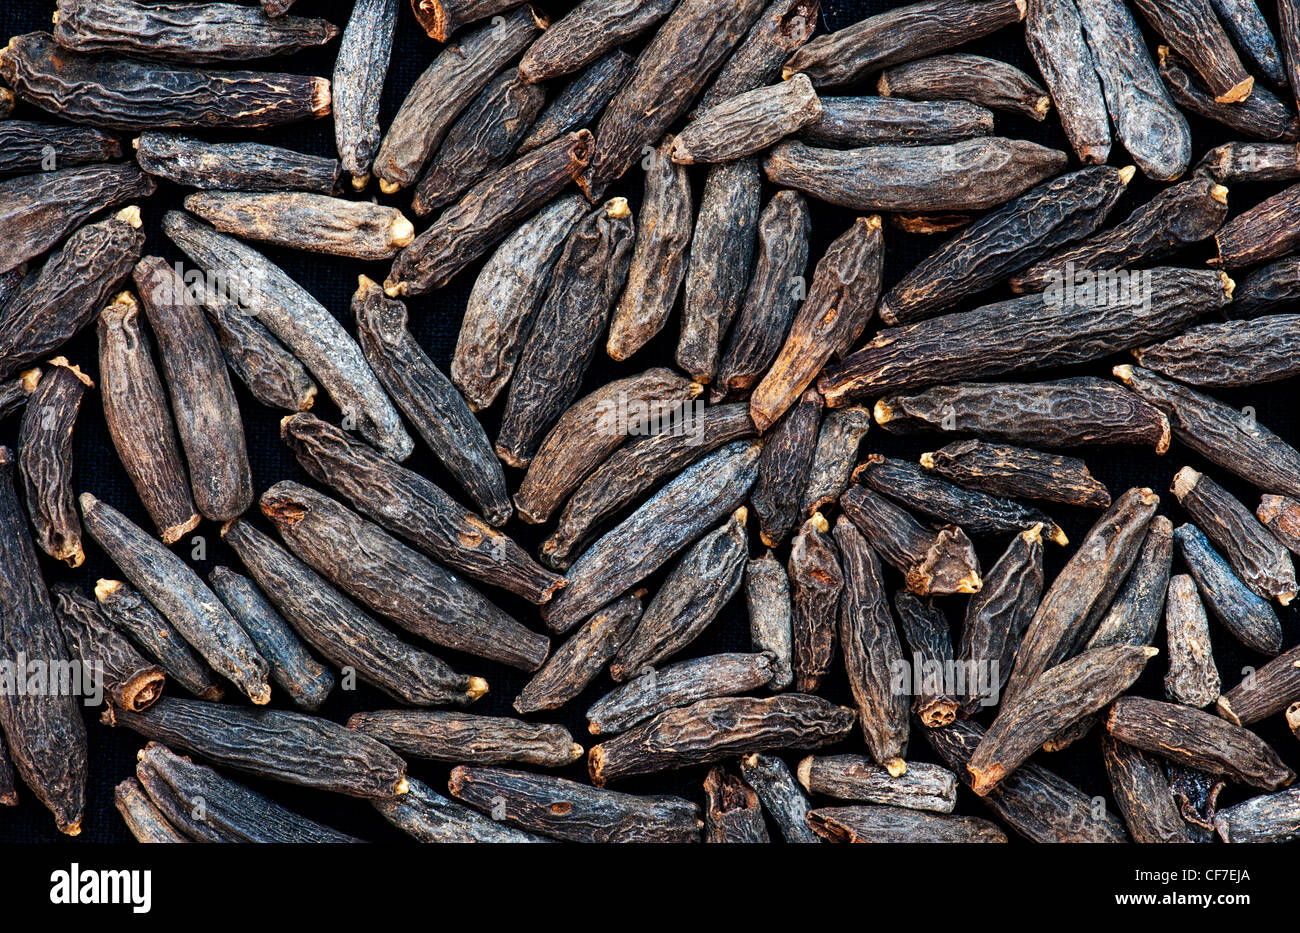 Indian spice Marati mogul or Moggu. Dried flower pod used in Indian cooking - Stock Image